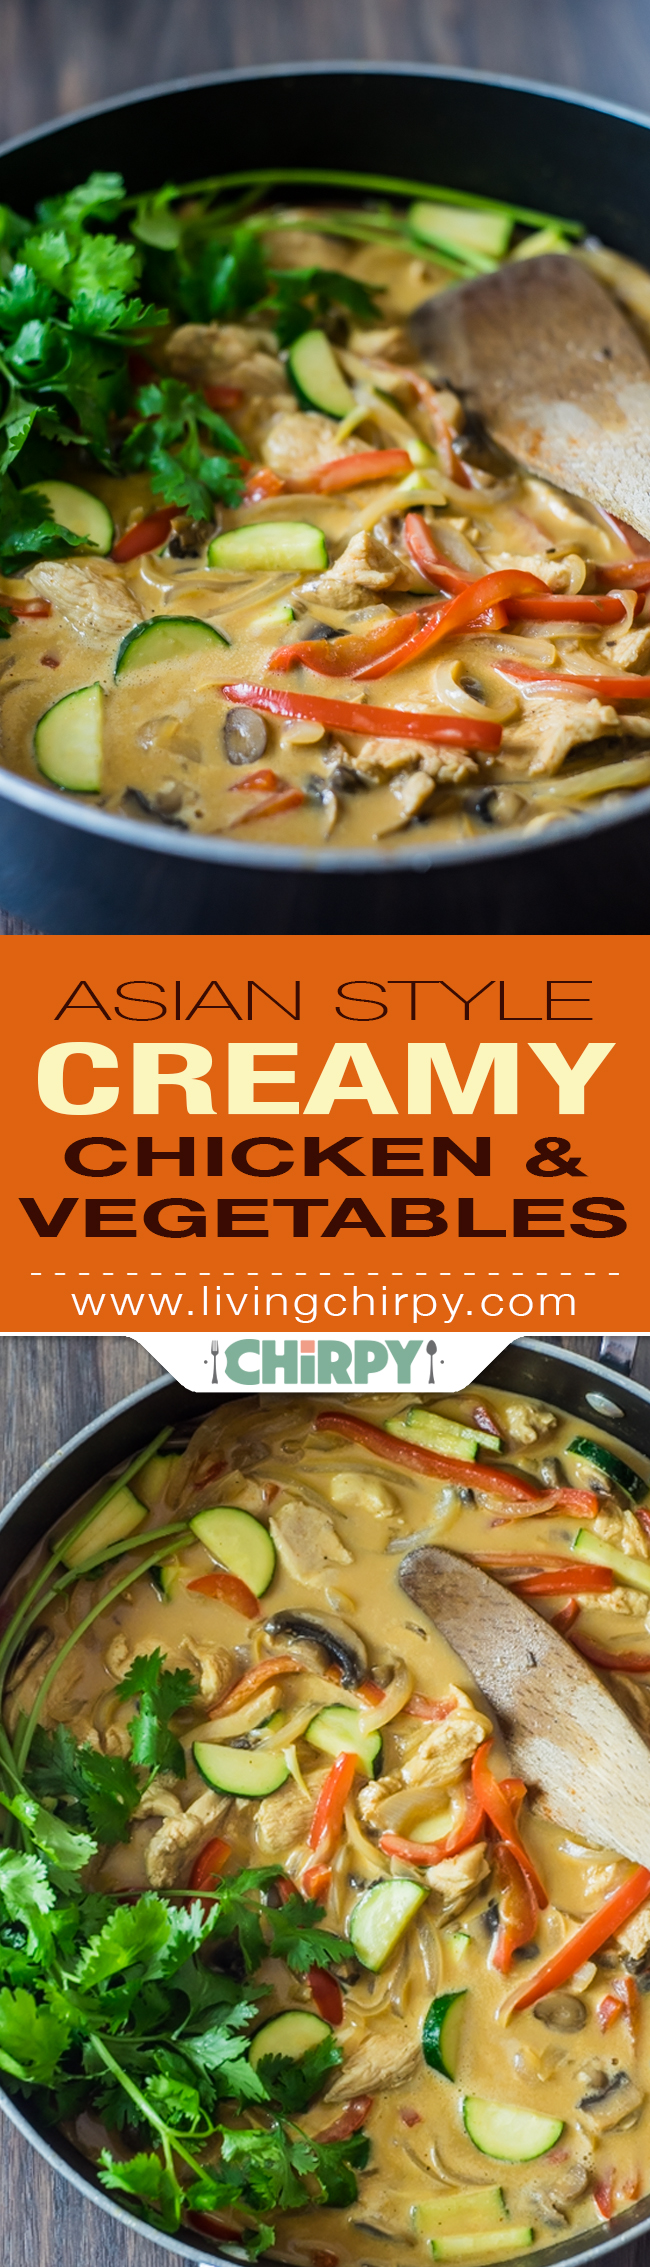 Asian-Style Creamy Chicken and Vegitables